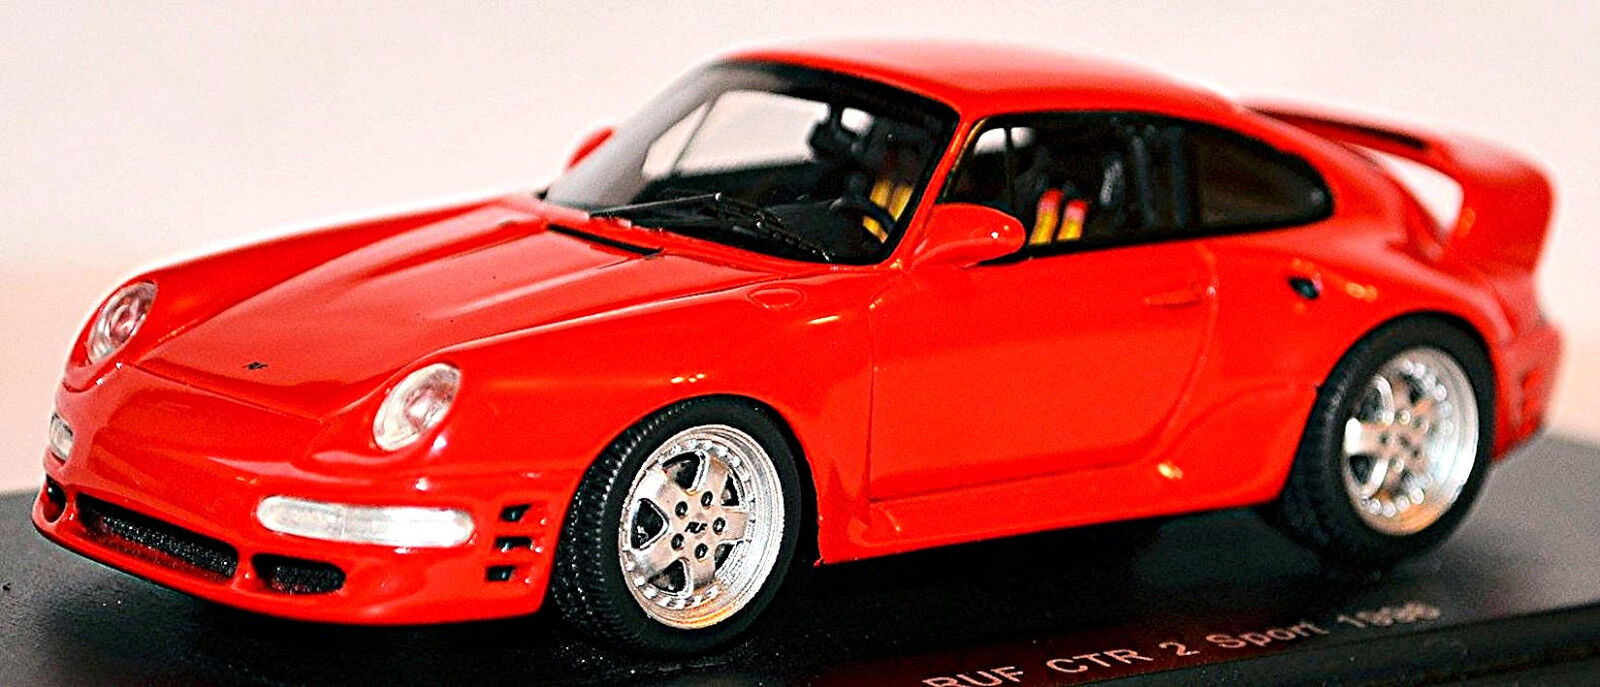 PORSCHE 911 RUF CTR 2 1997 Rouge rouge 1 43 Spark